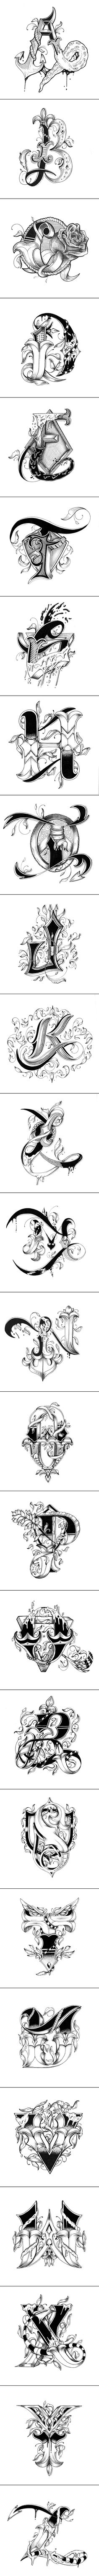 Love Letters Alphabet Hand Drawn by Raul Alejandro - For typography Lovers... #Letteringalphabet #letteringdesign #letteringdesignideas